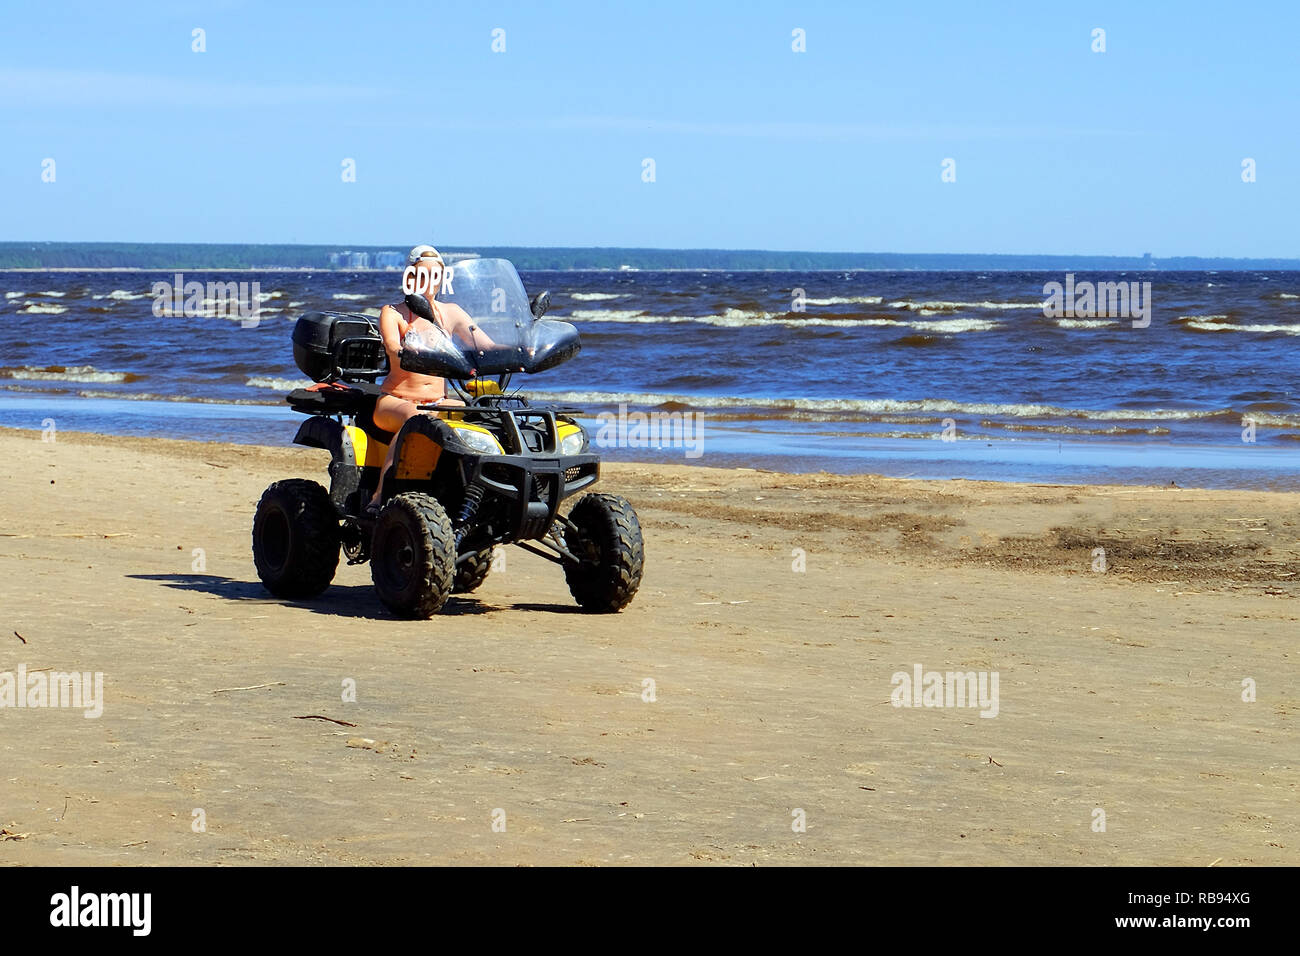 GDPR-a girl on a Quad bike riding on the beach hides her face behind the inscription of cybersecurity and privacy. - Stock Image